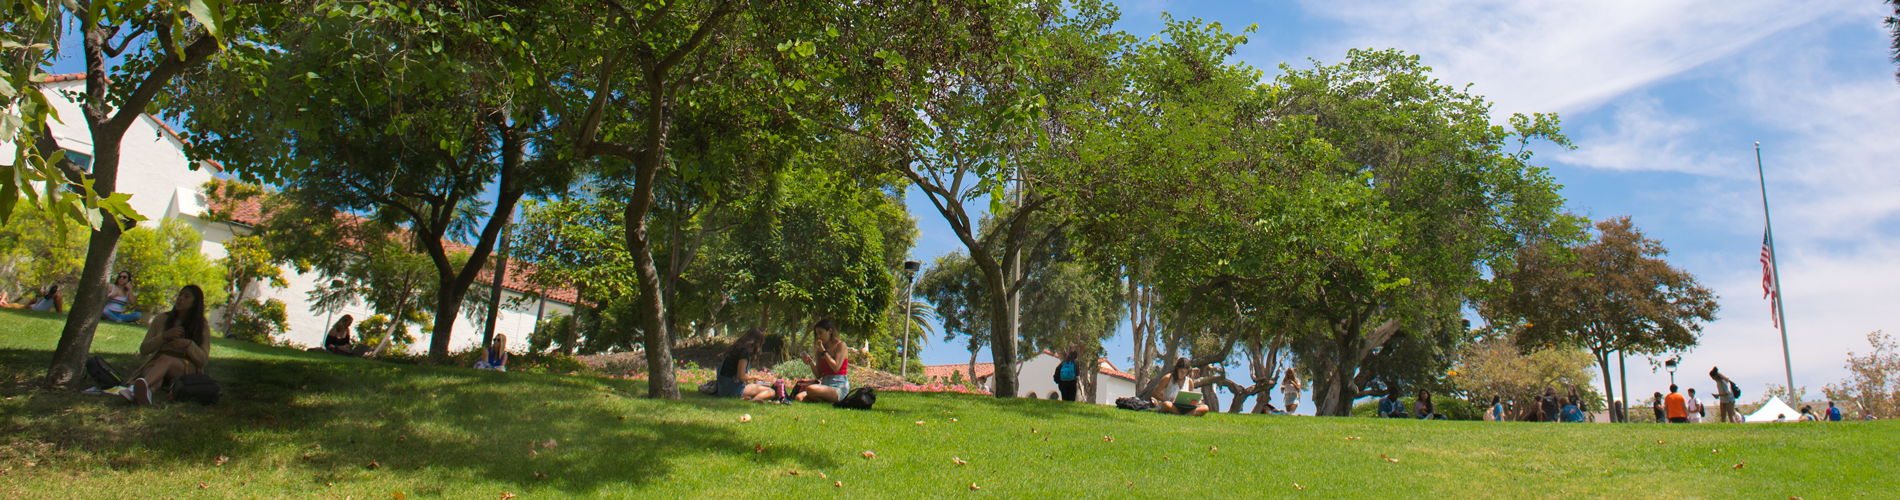 Scripps Cottage hill, a popular study spot.